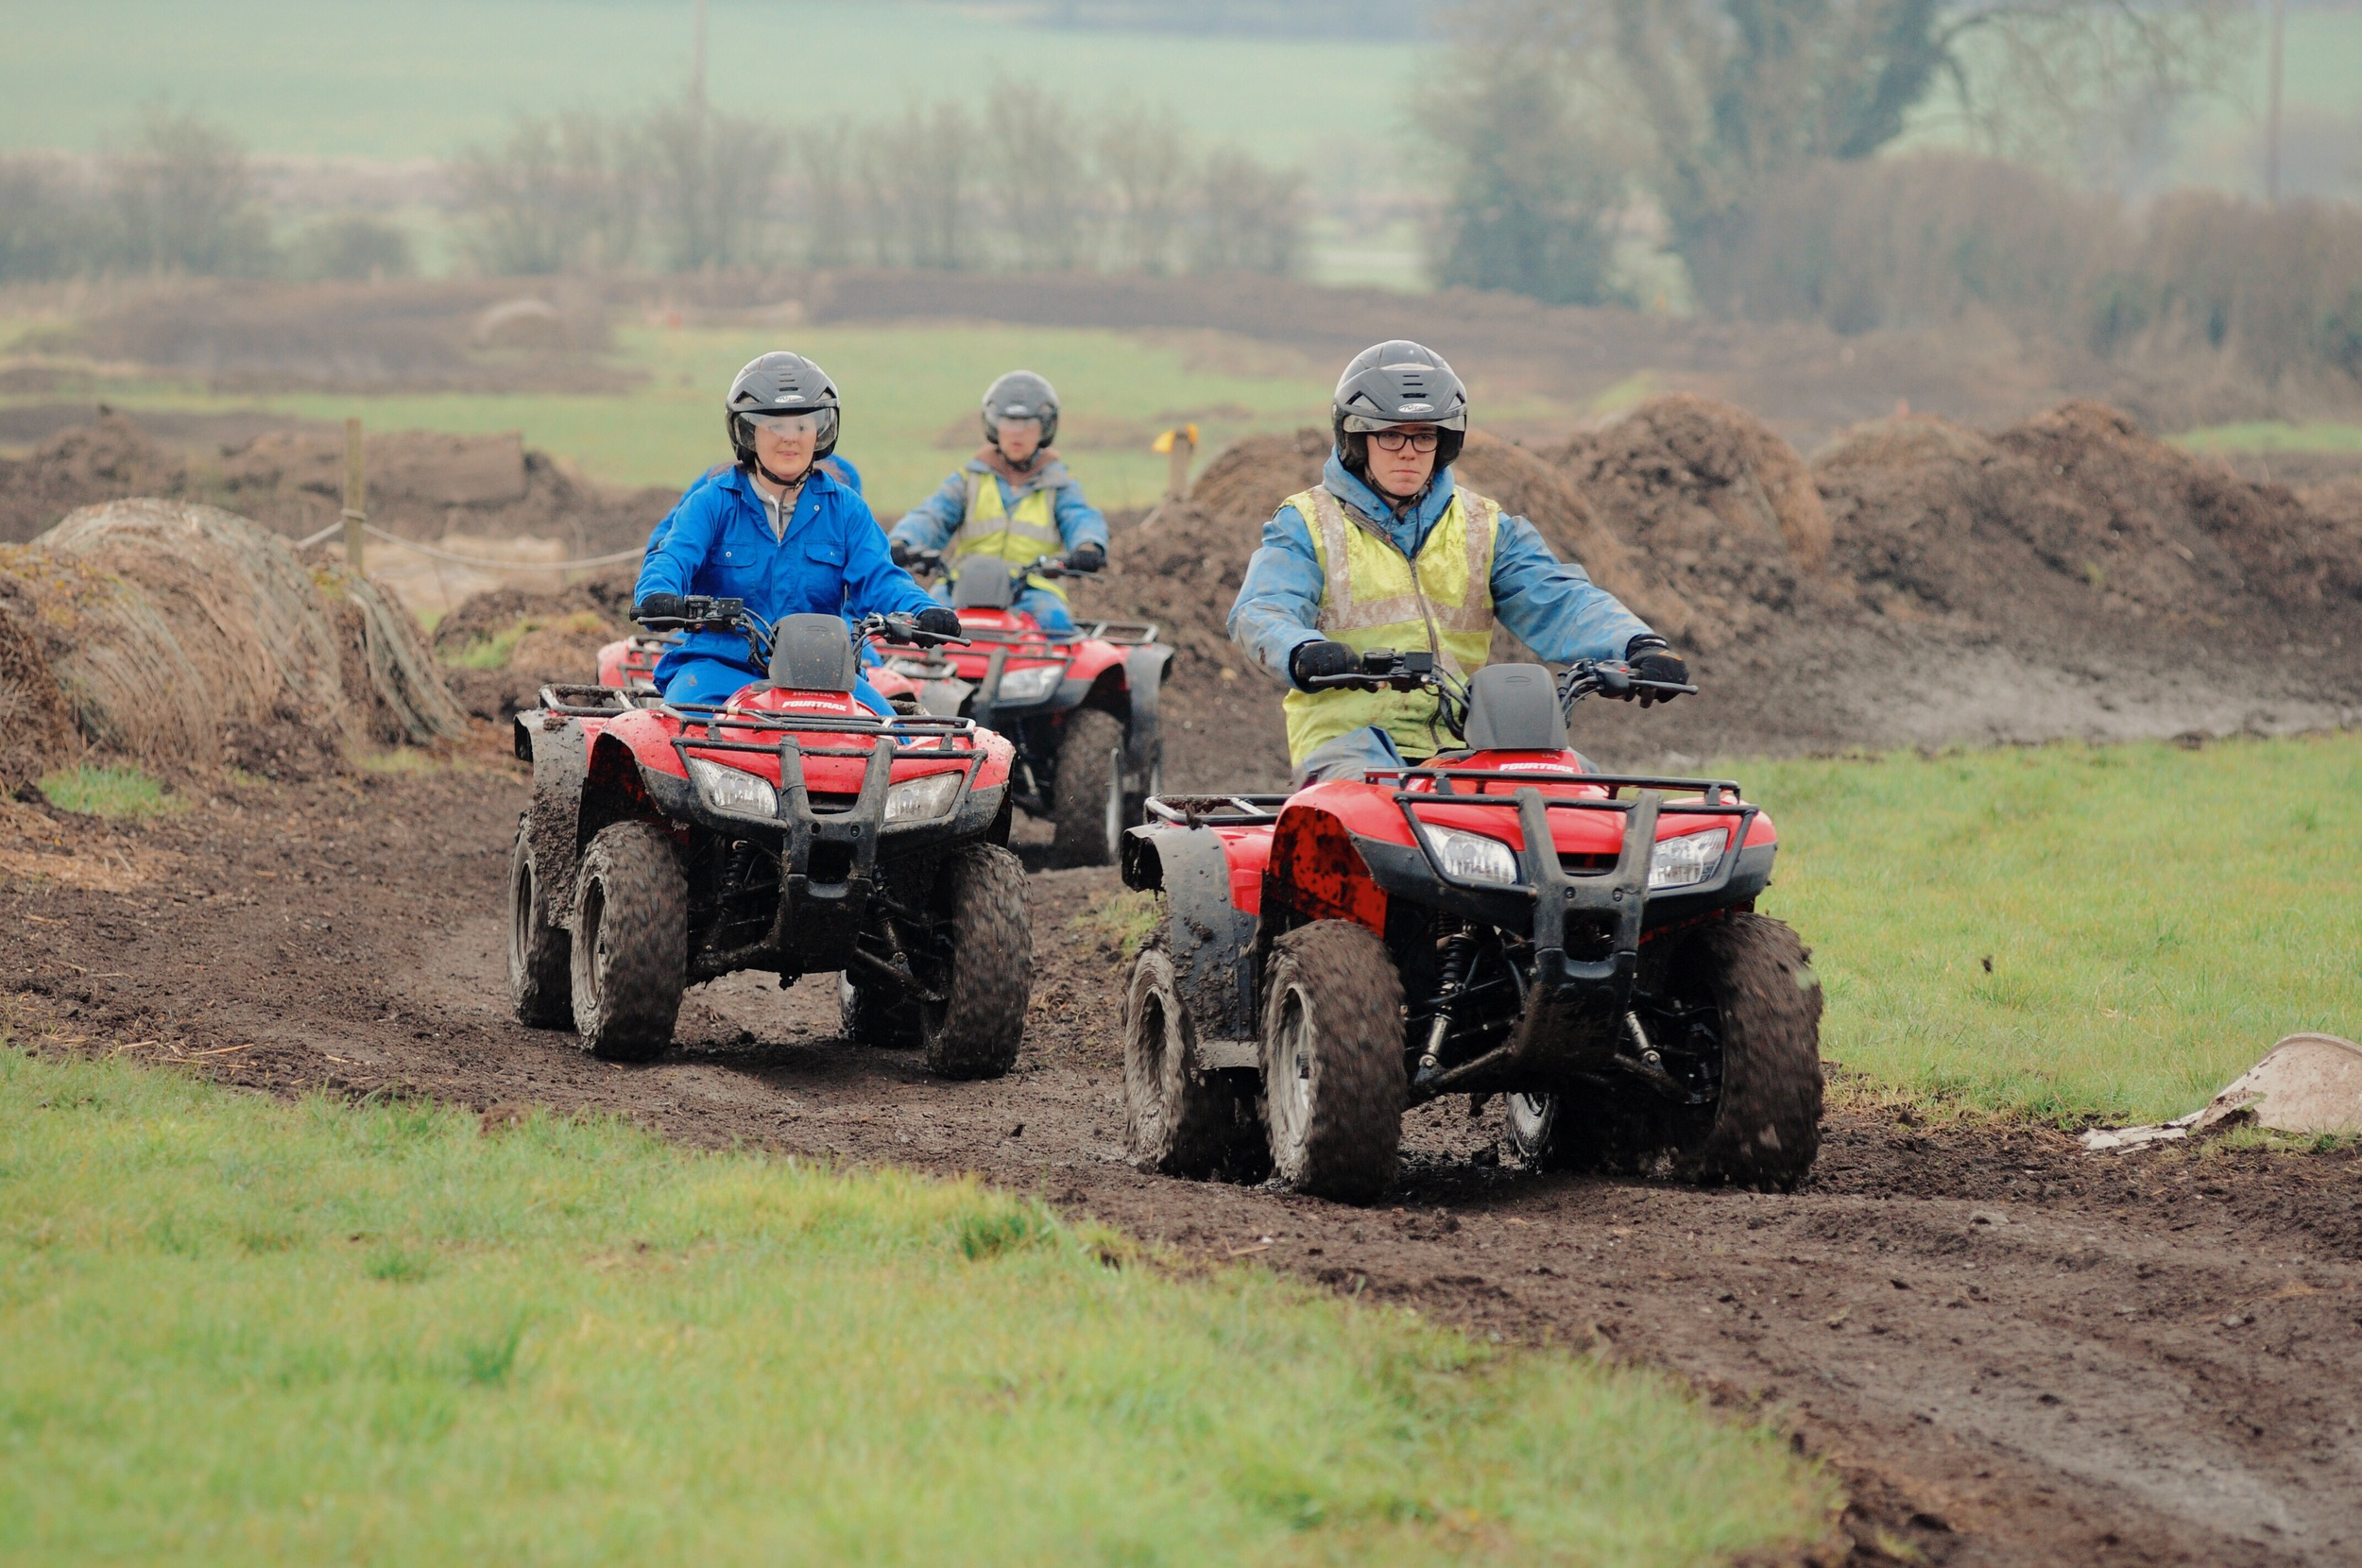 Track Riding with Easi Qualified ATV instructors